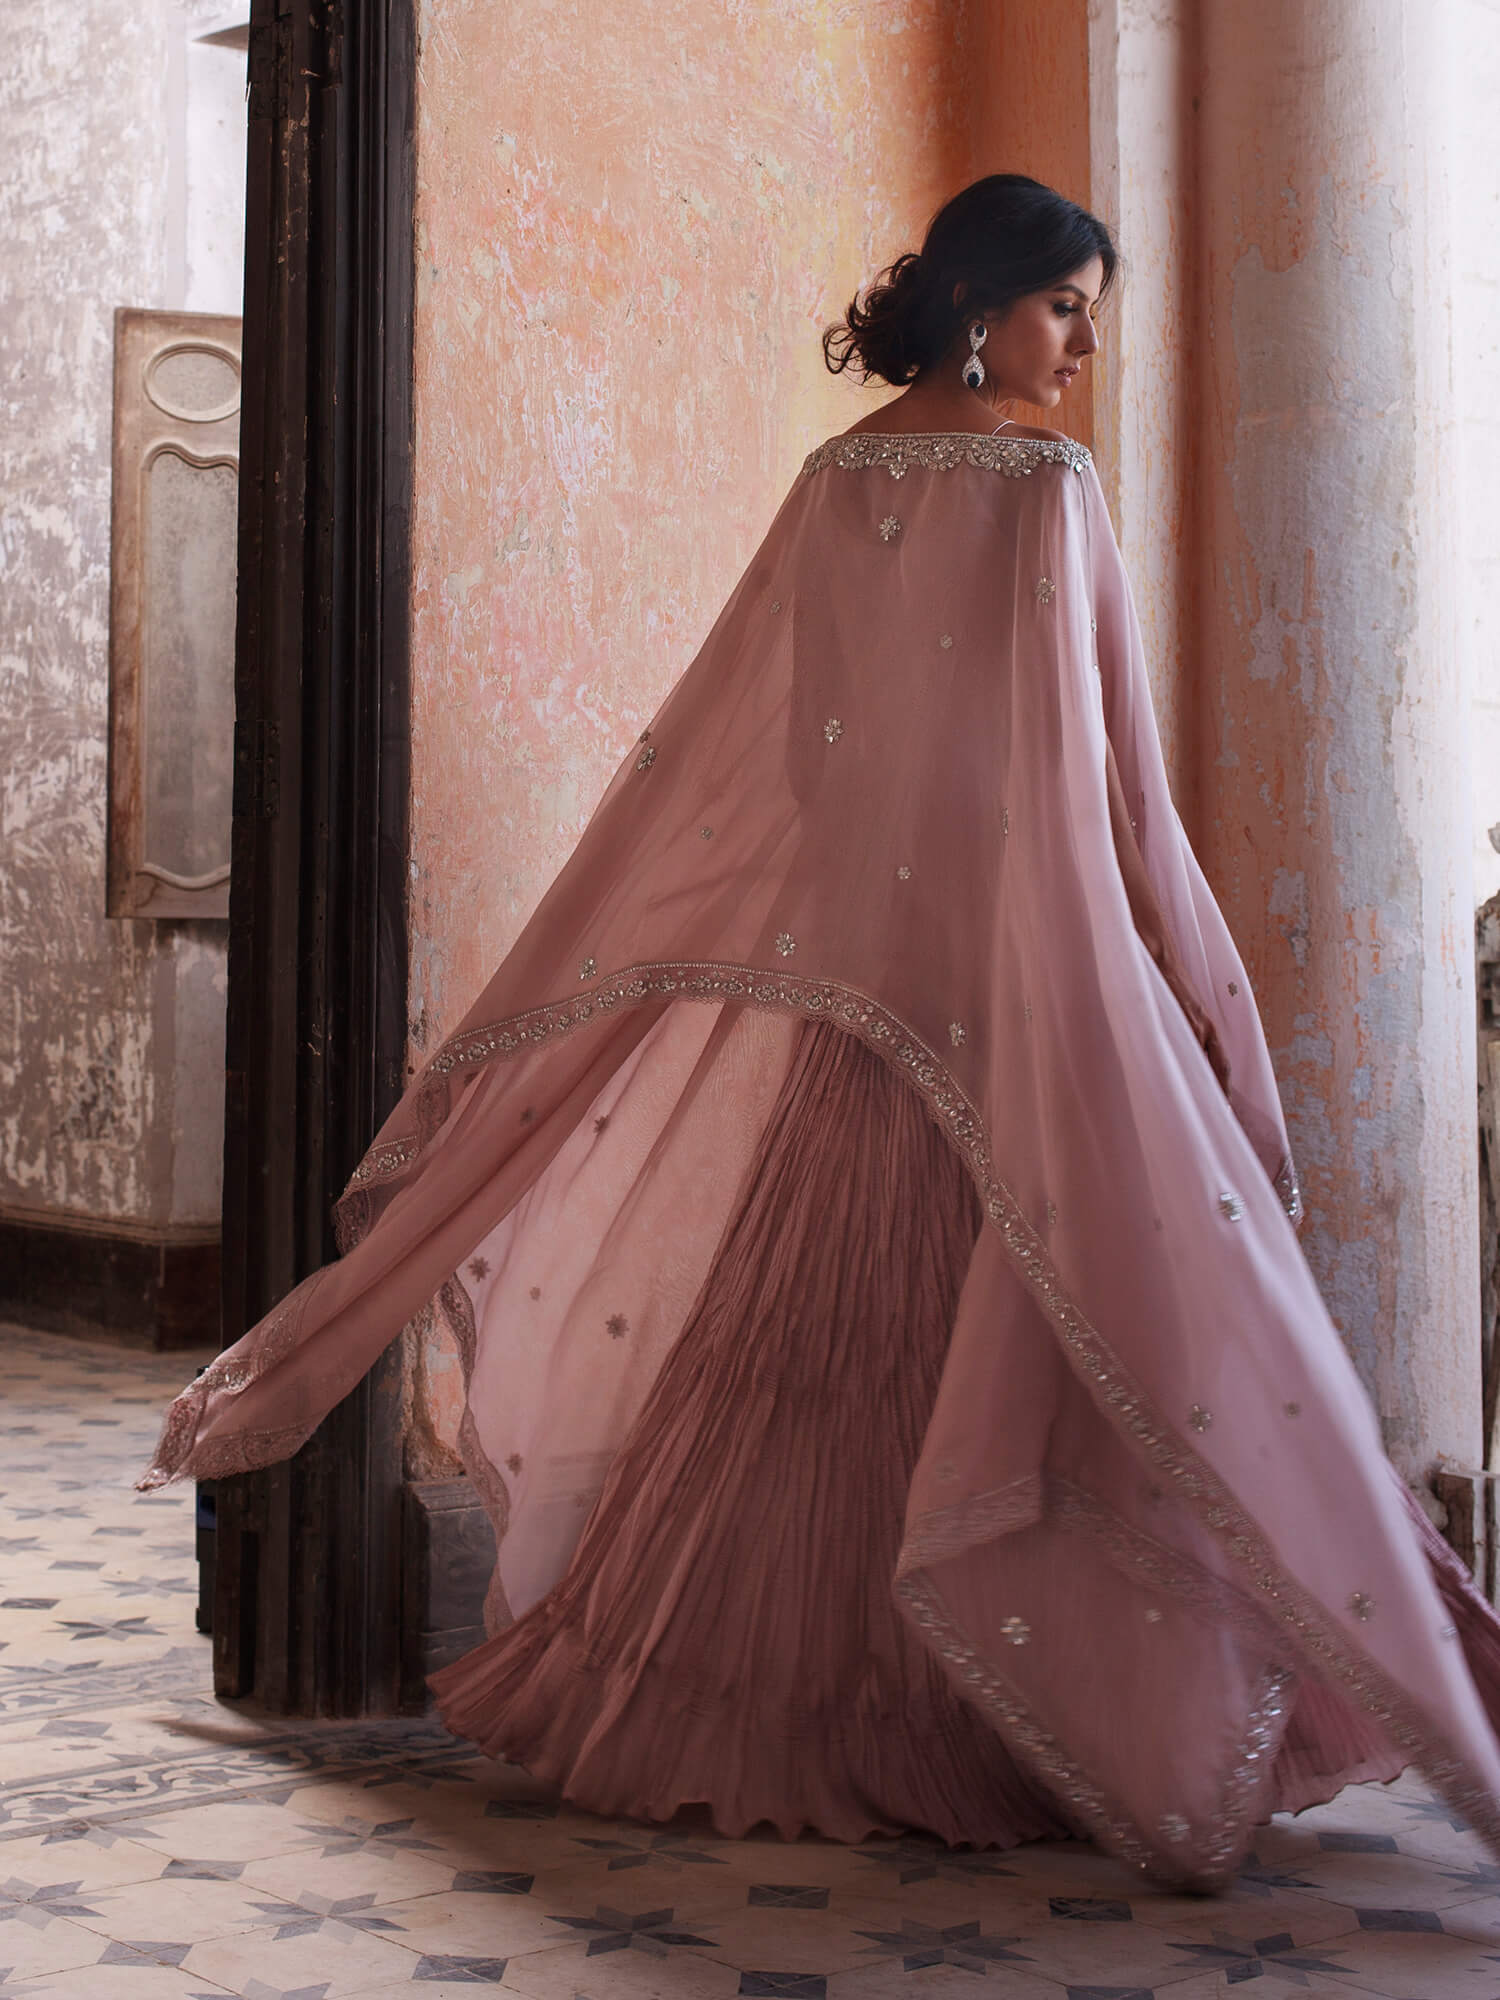 Inca Poncho W/ Crushed Dress - Misha Lakhani